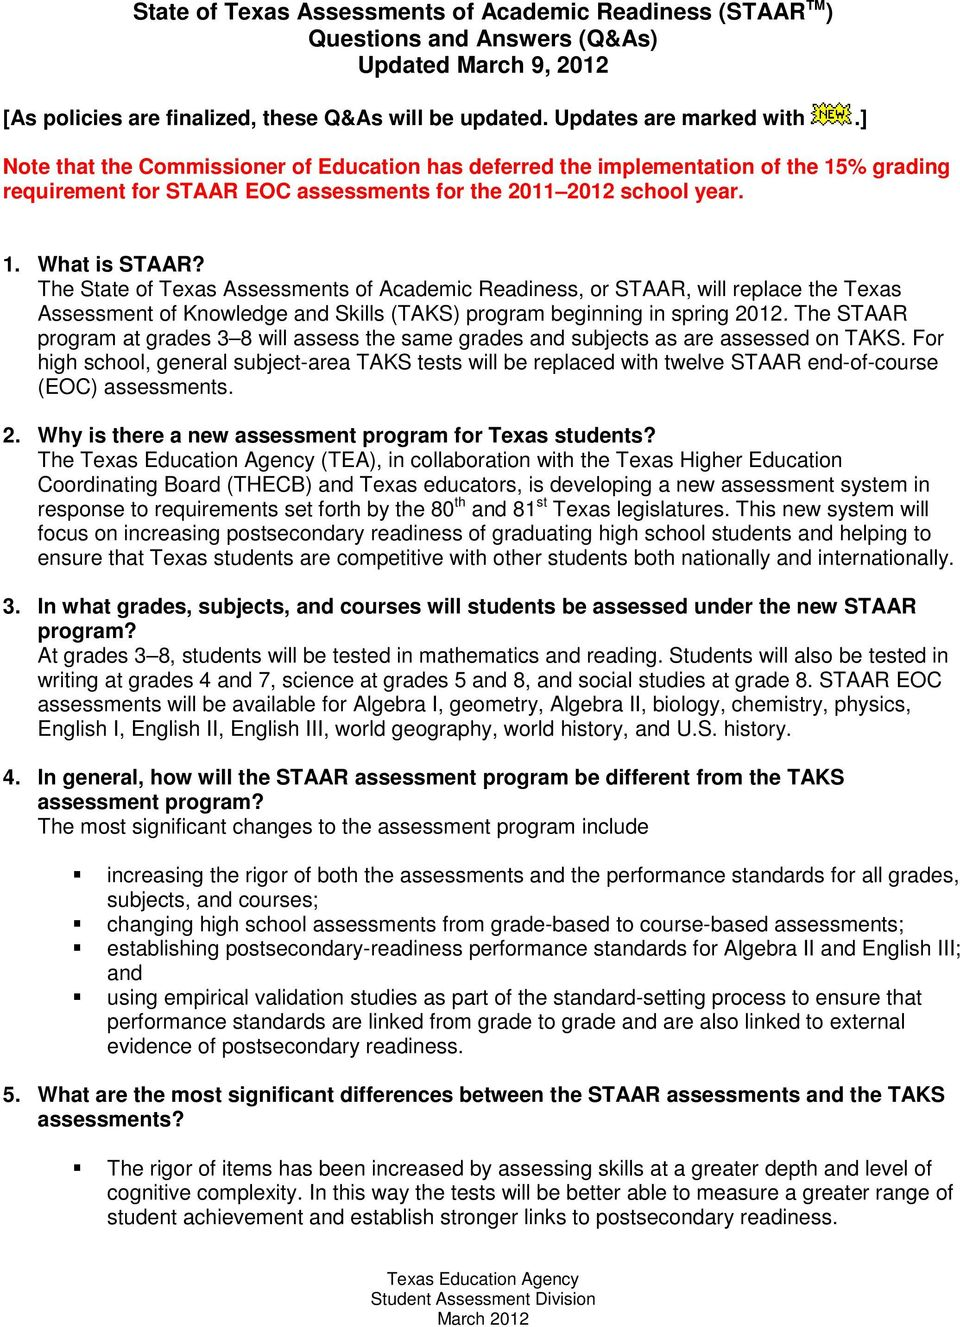 The State of Texas Assessments of Academic Readiness, or STAAR, will replace the Texas Assessment of Knowledge and Skills (TAKS) program beginning in spring 2012.